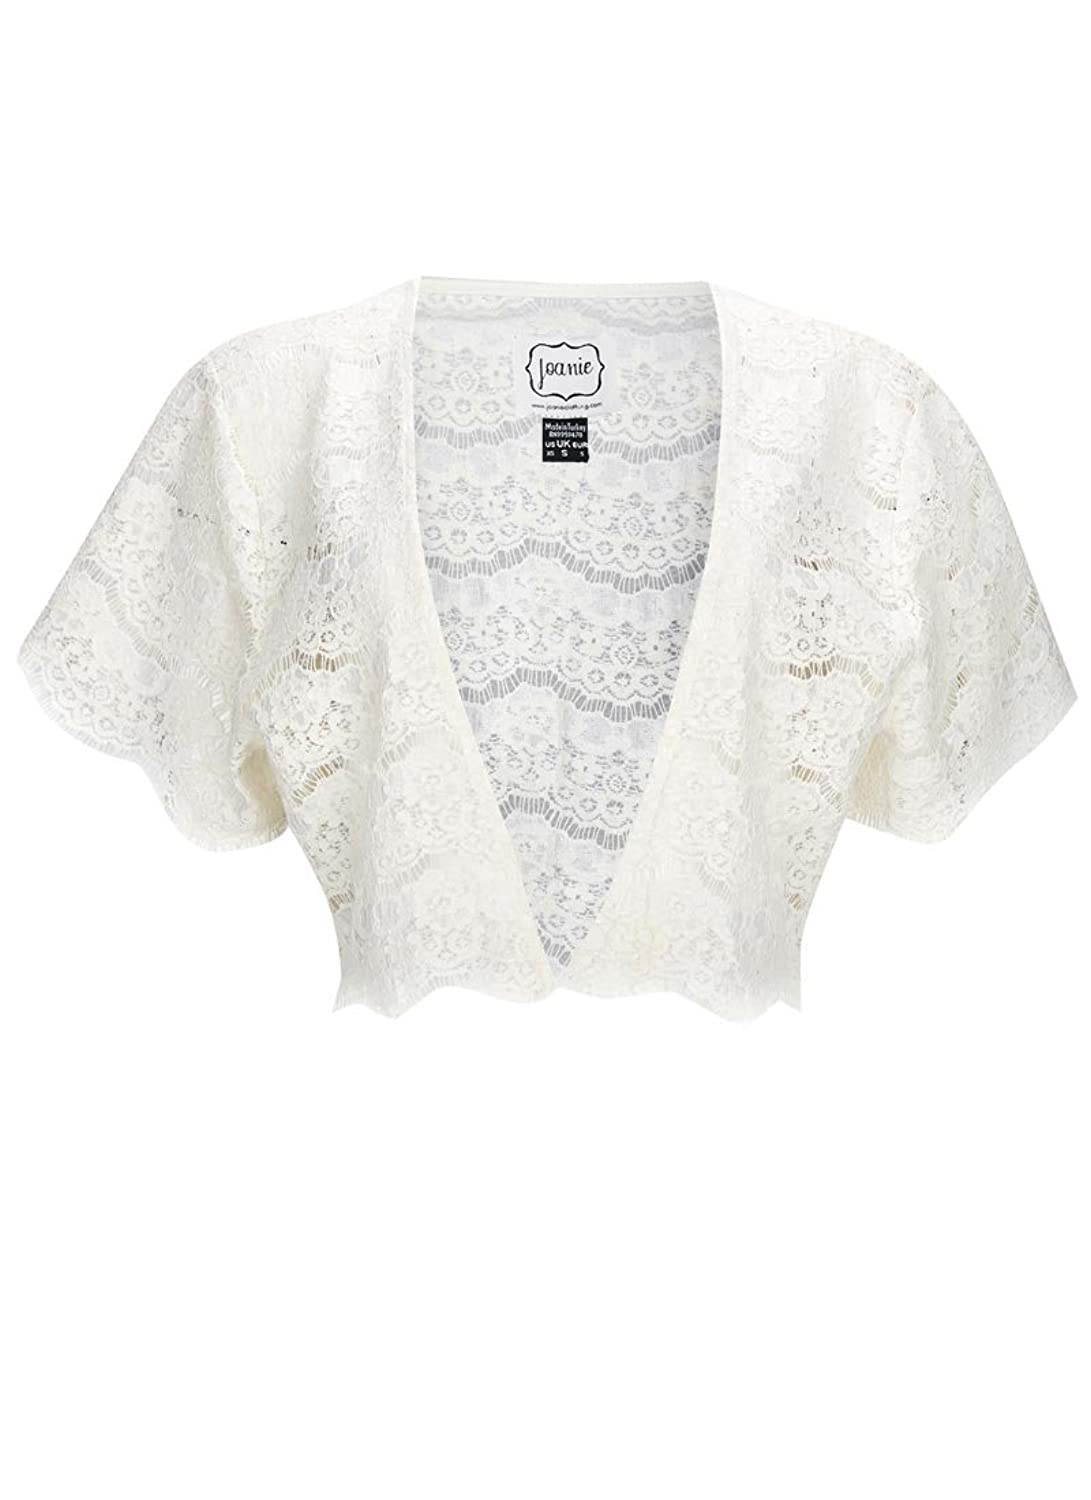 Joanie Clothing 'Elodie' Lace Shrug in Black and White